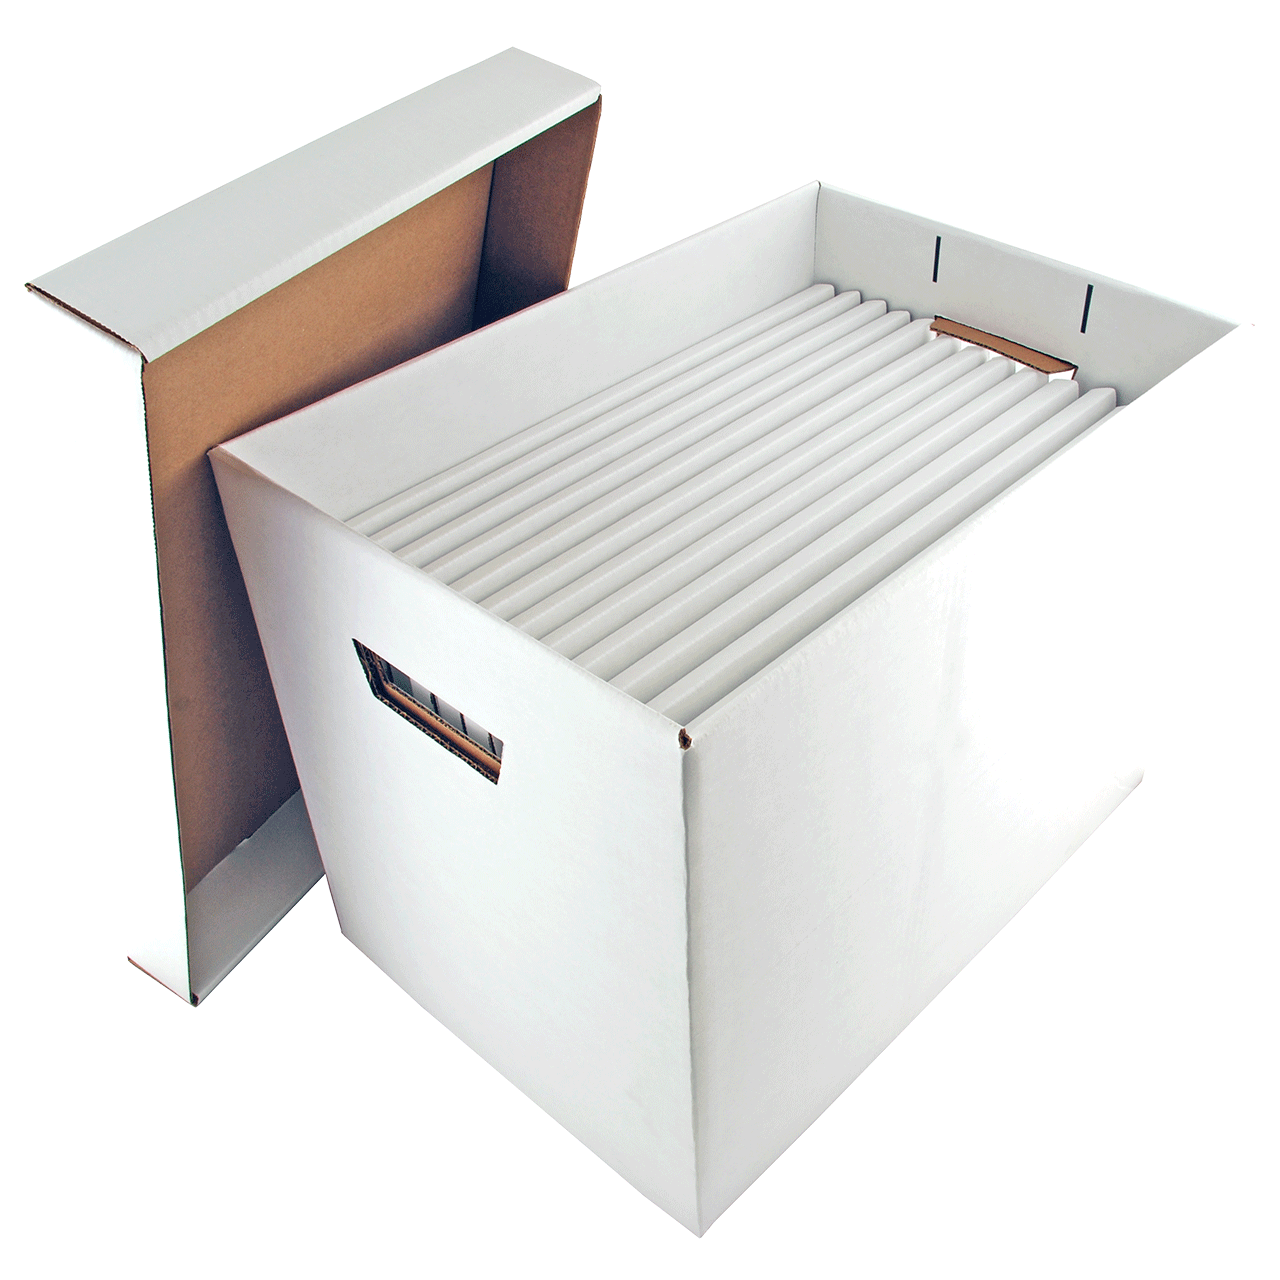 11 X 17 Vertical File Storage Container 11x17 Com Cardboard Storage Storage Affordable Storage